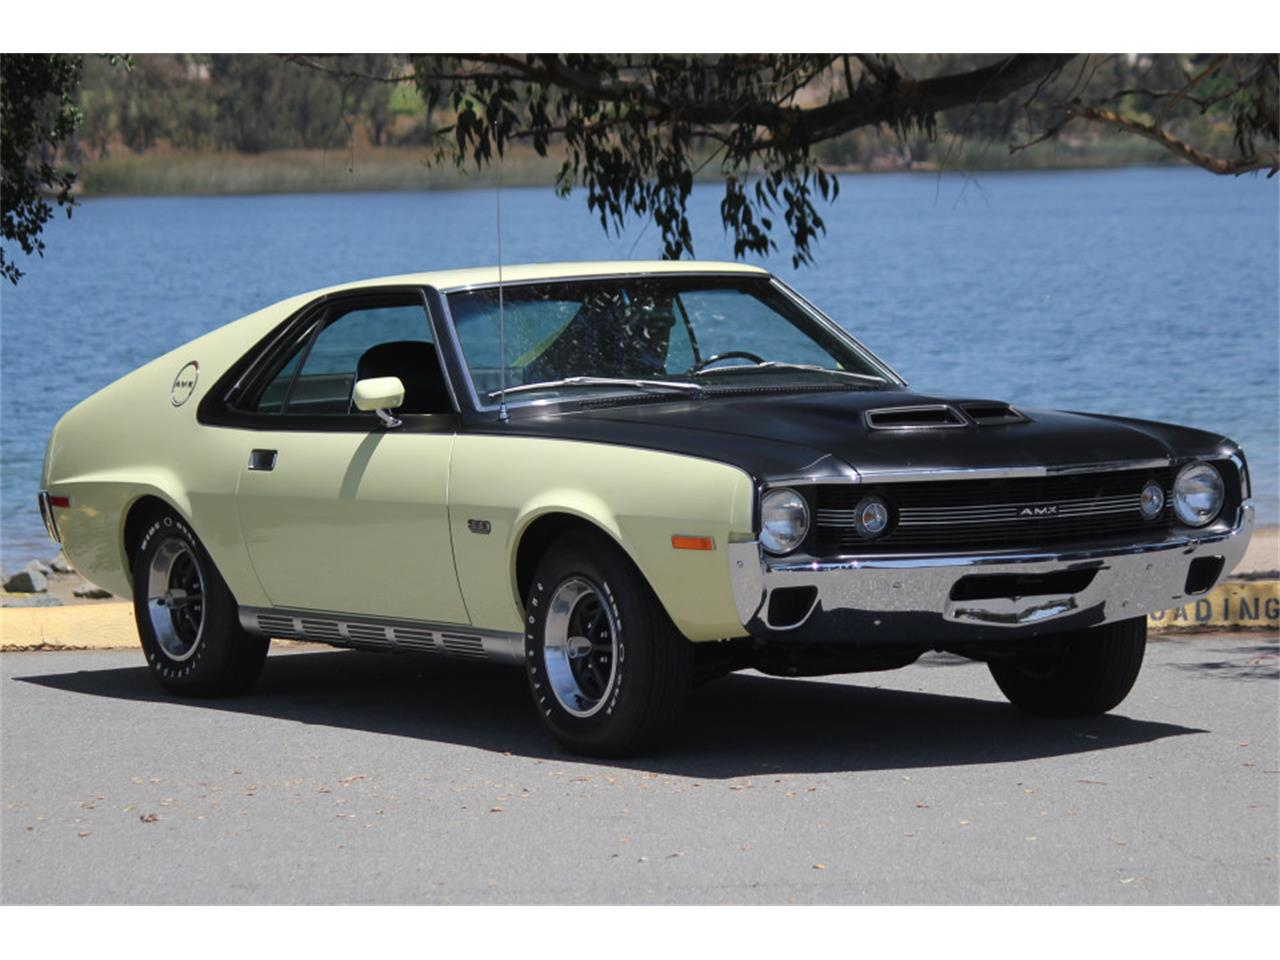 Large Picture of 1970 AMX located in San Diego  California - $59,500.00 Offered by Precious Metals - QCFB